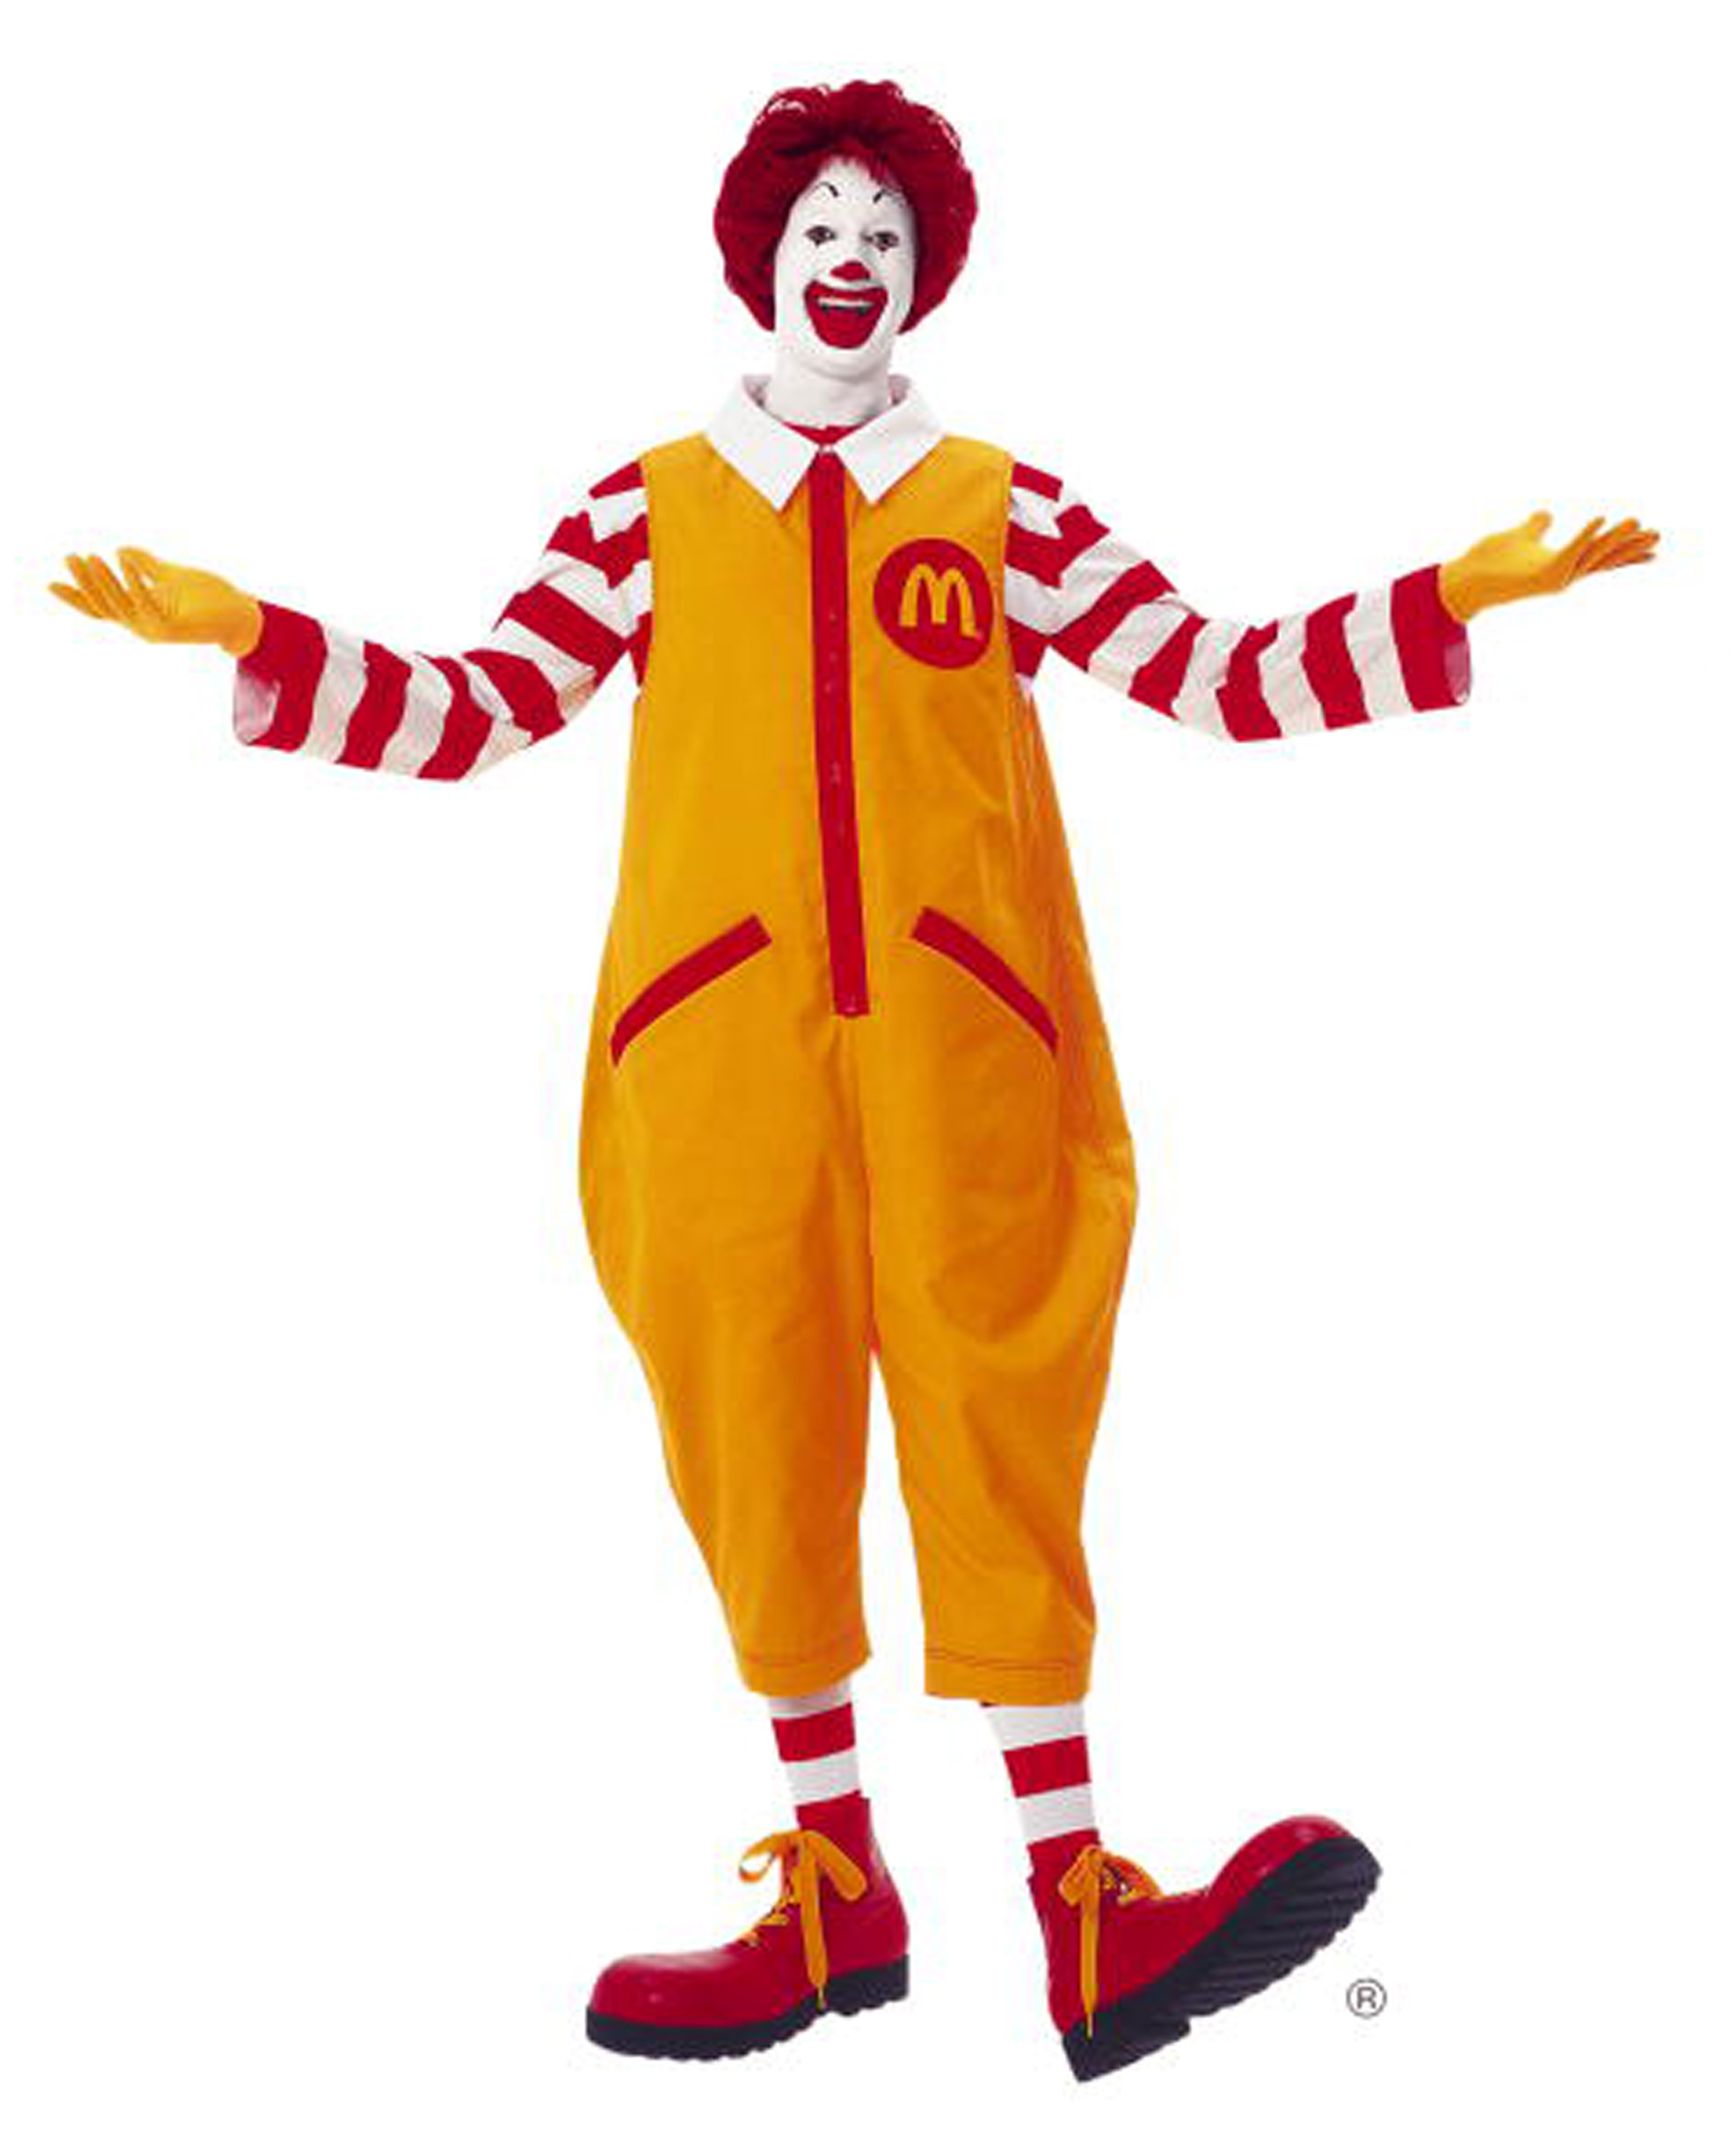 http://dekerivers.files.wordpress.com/2011/07/os-ronald-clown.jpg